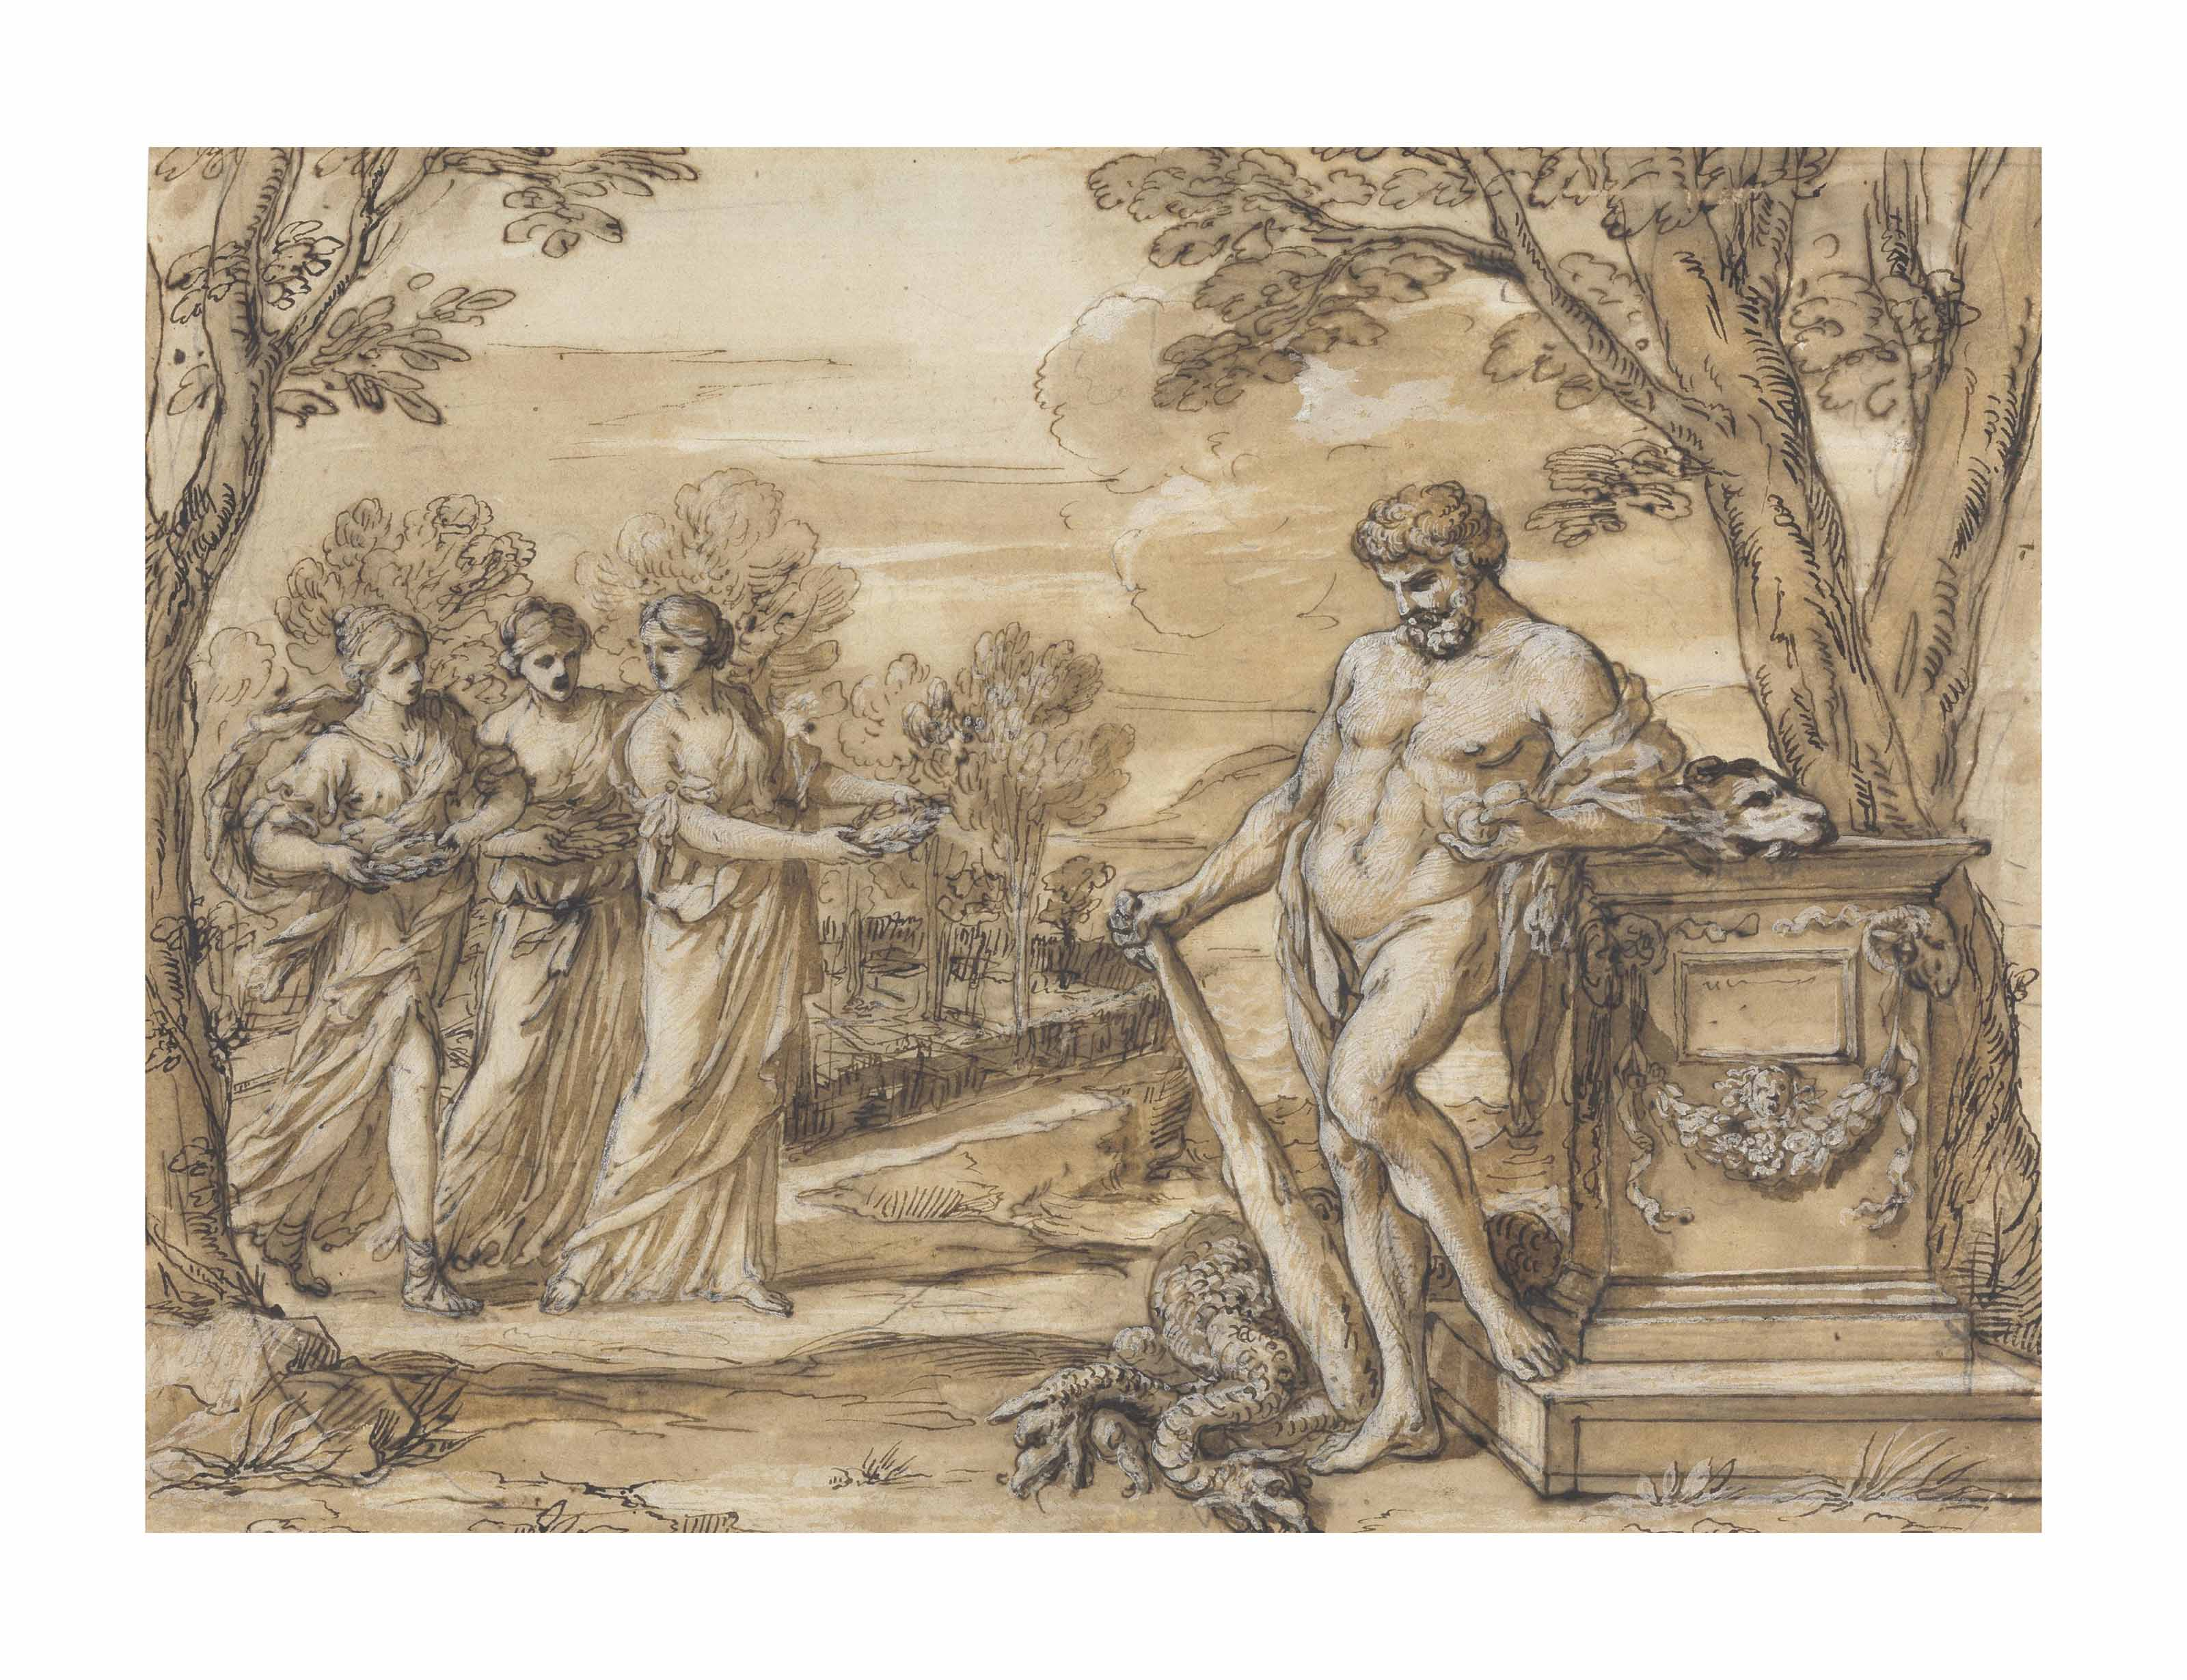 Hercules in the garden of the Hesperides